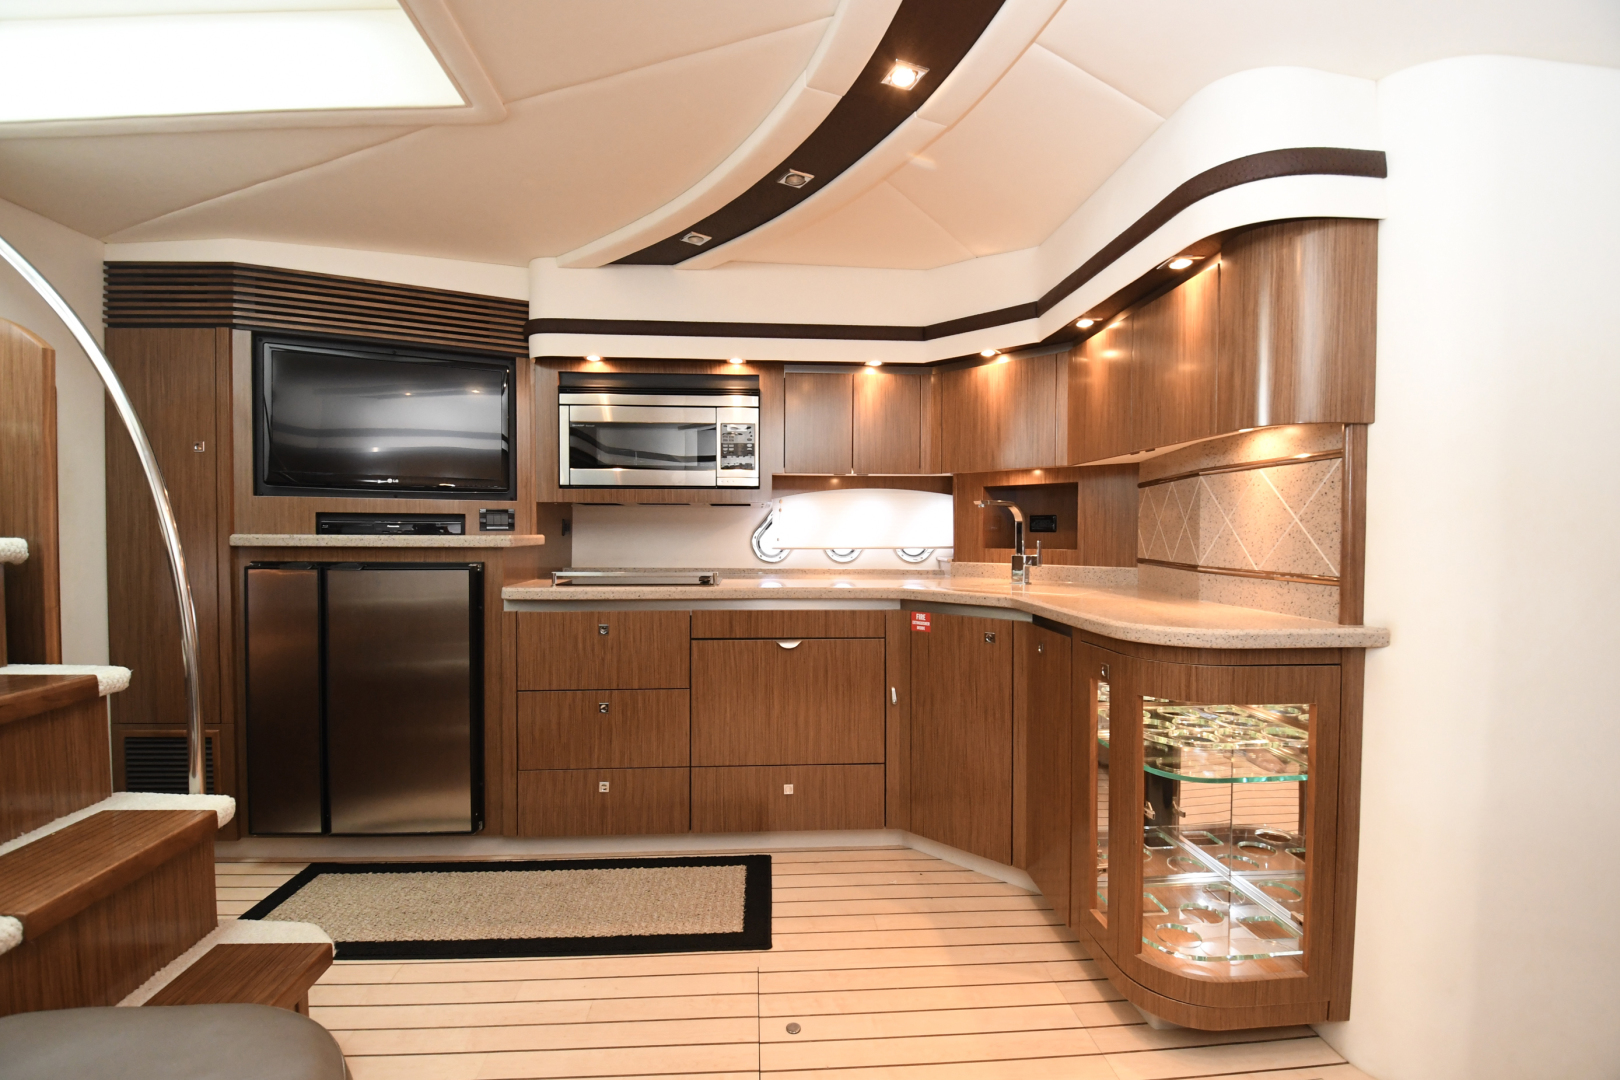 Cruisers-540 Coupe 2014-Galati Yacht Sales Trade Destin-Florida-United States-2014 Cruisers 540 Coupe Galley-1417890 | Thumbnail